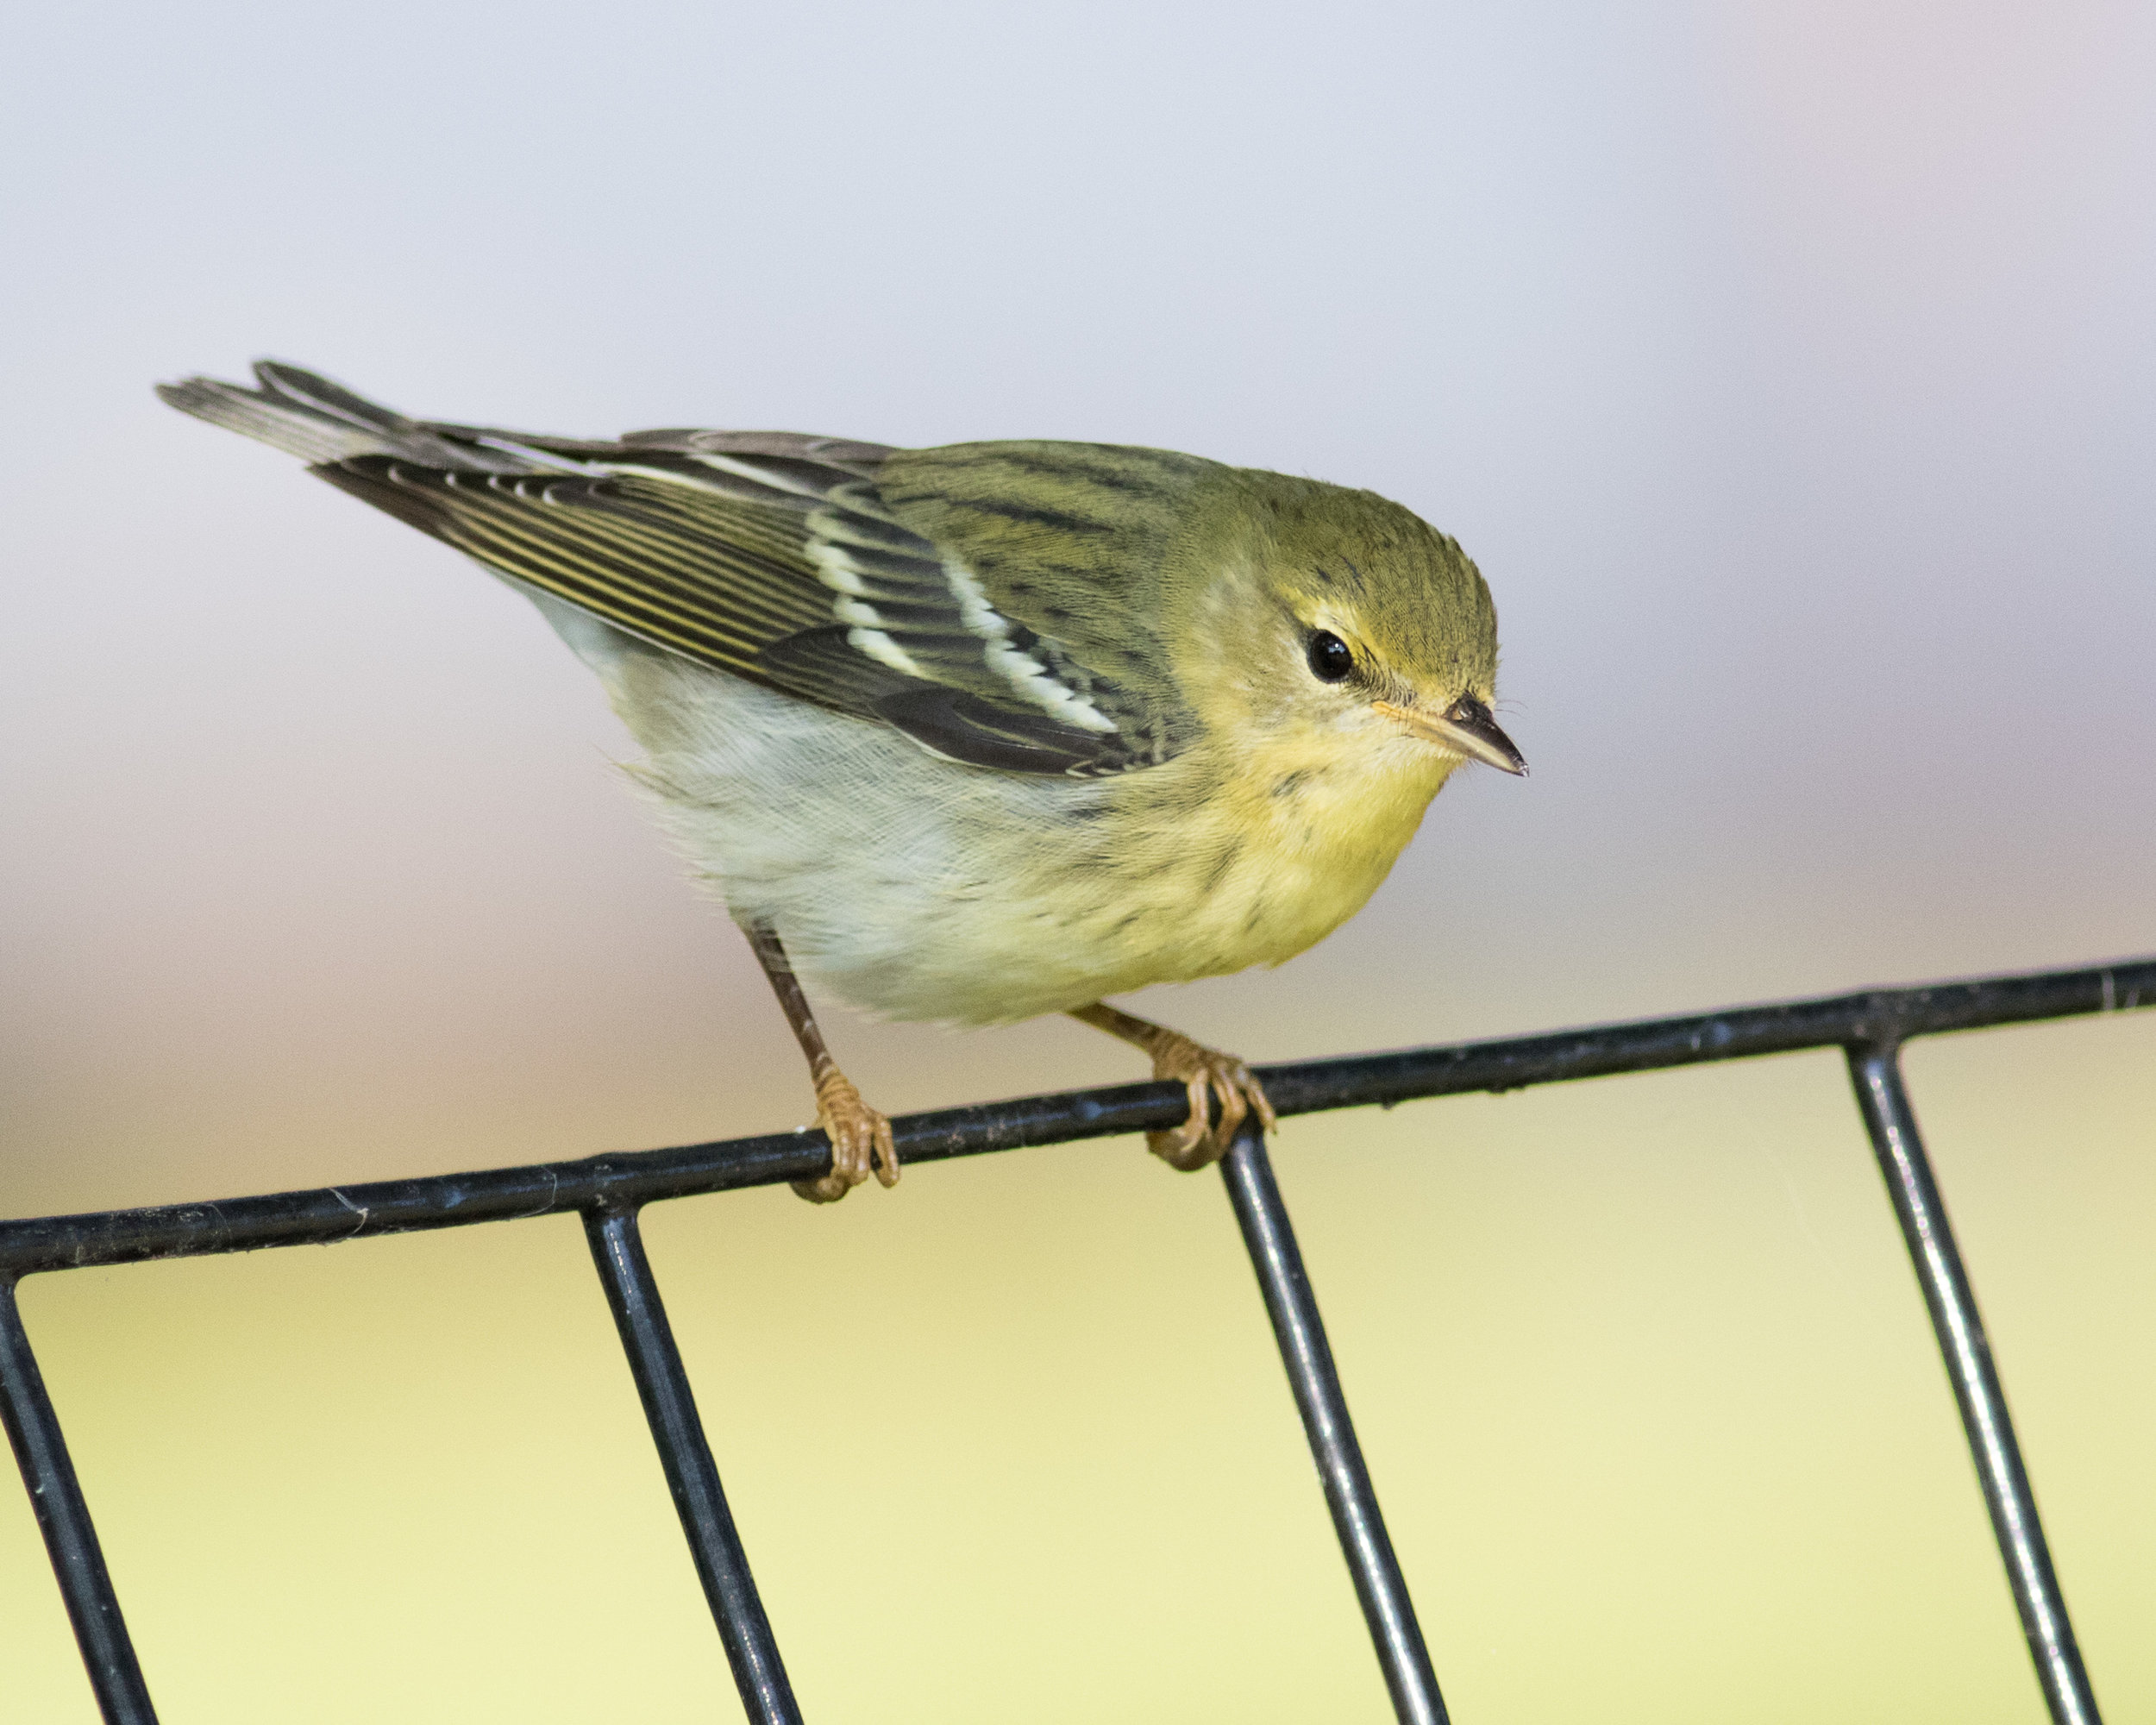 One of the pine warblers we spotted on our walk. Photo by August Davidson-Onsgard.